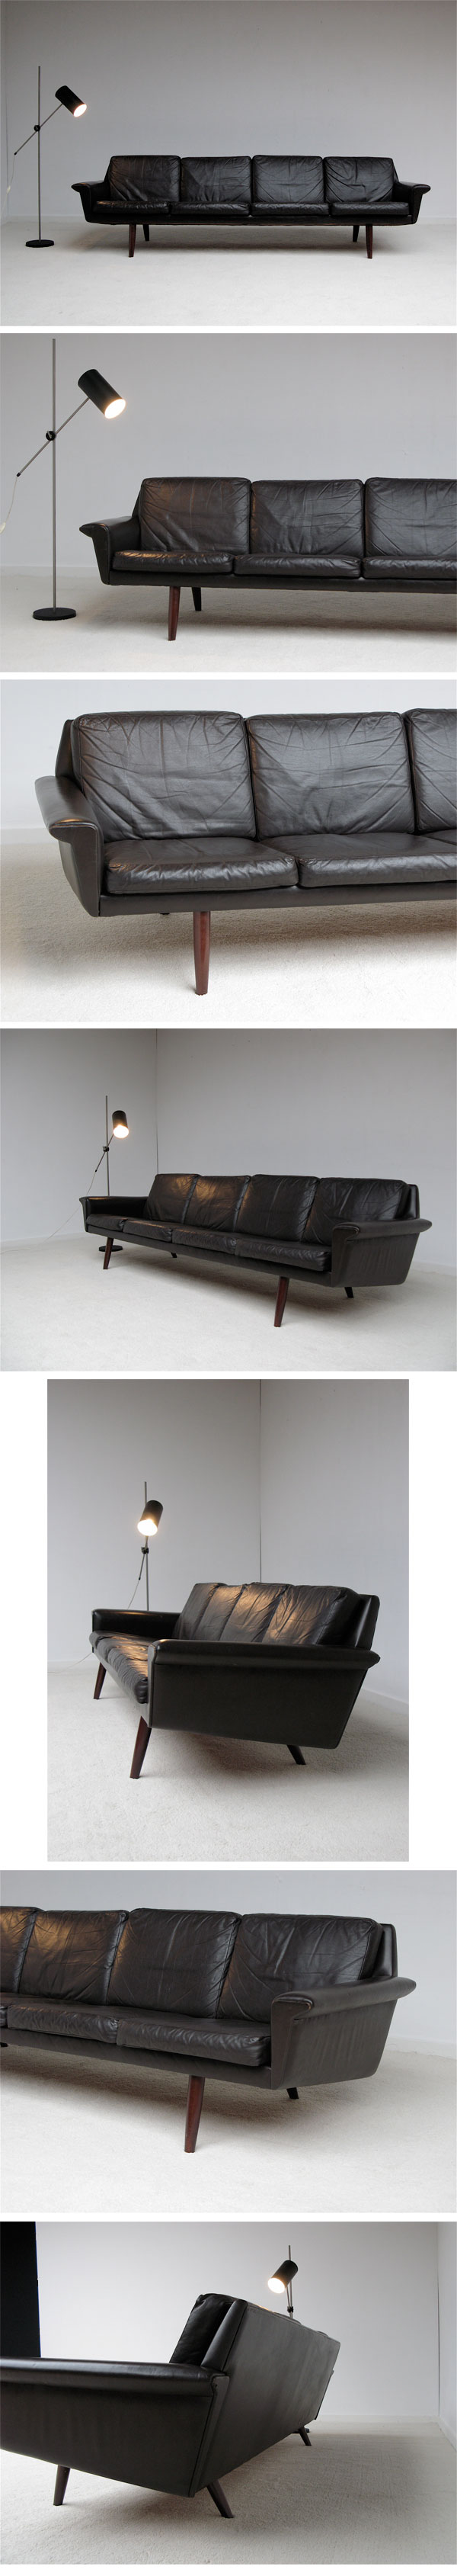 LOW, PROFILE, danish, modern, seat, sofa, luxury